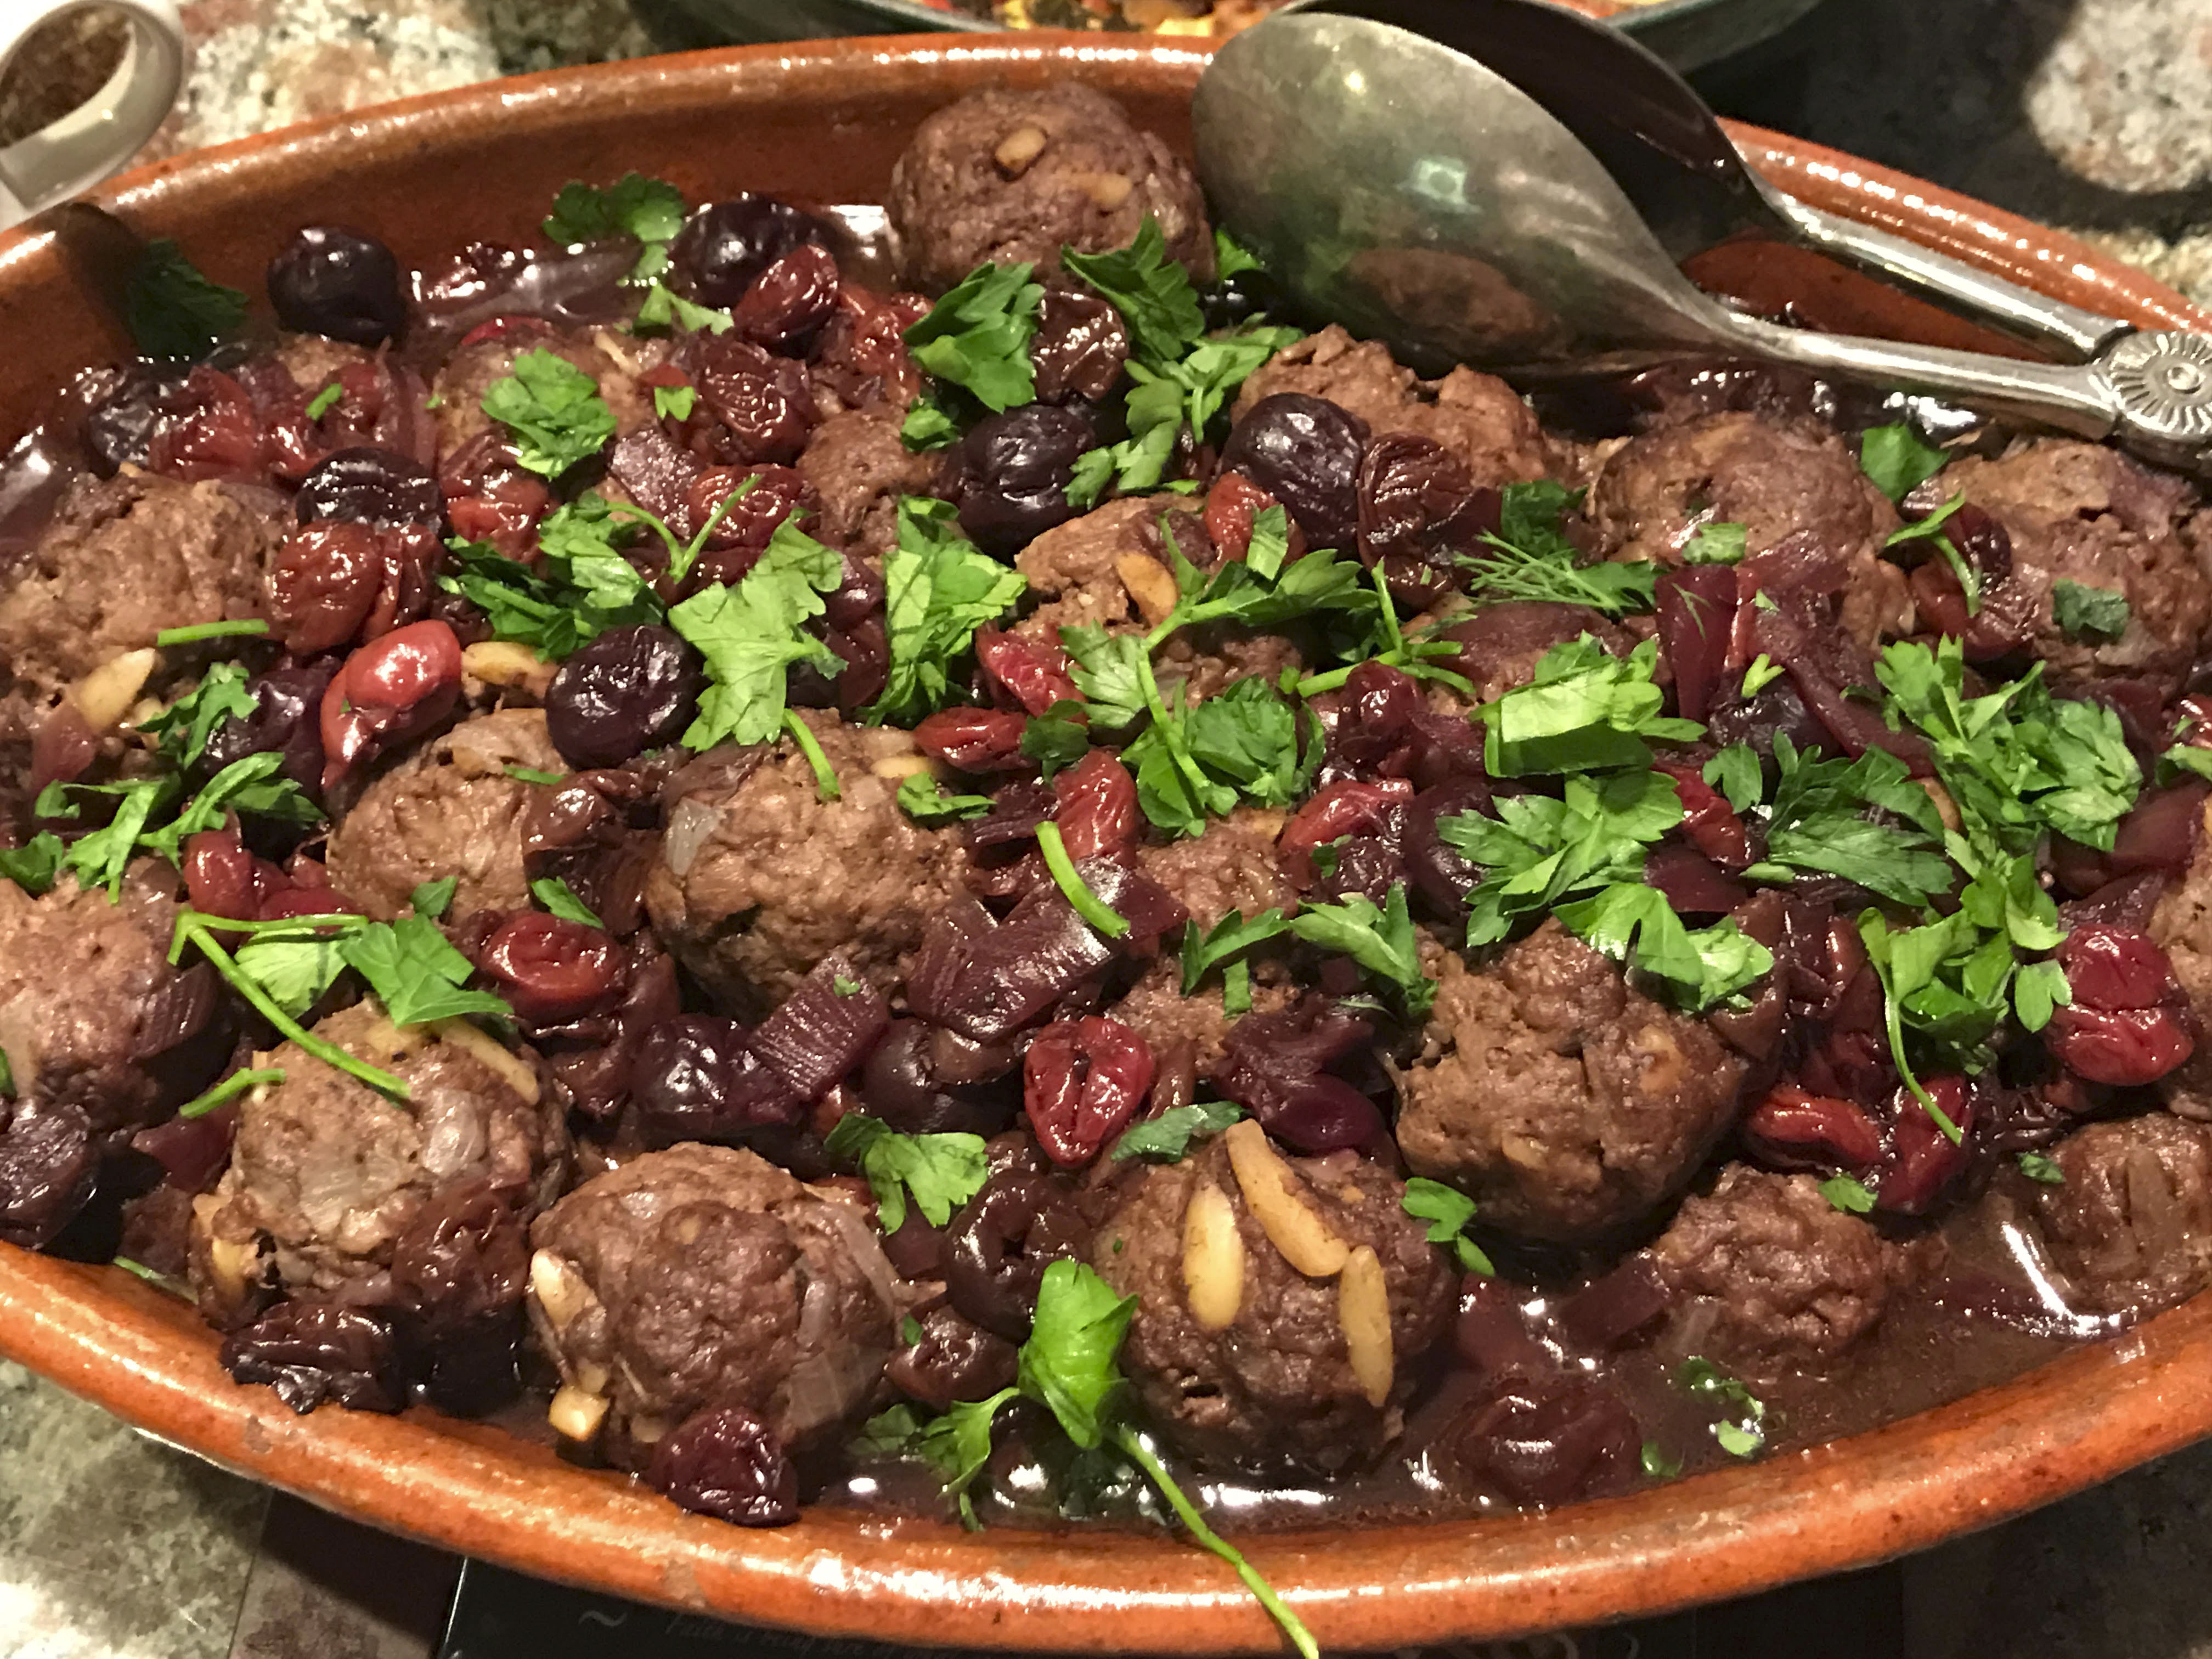 a large pot filled with meatballs and beans, greenery sprinkled on top